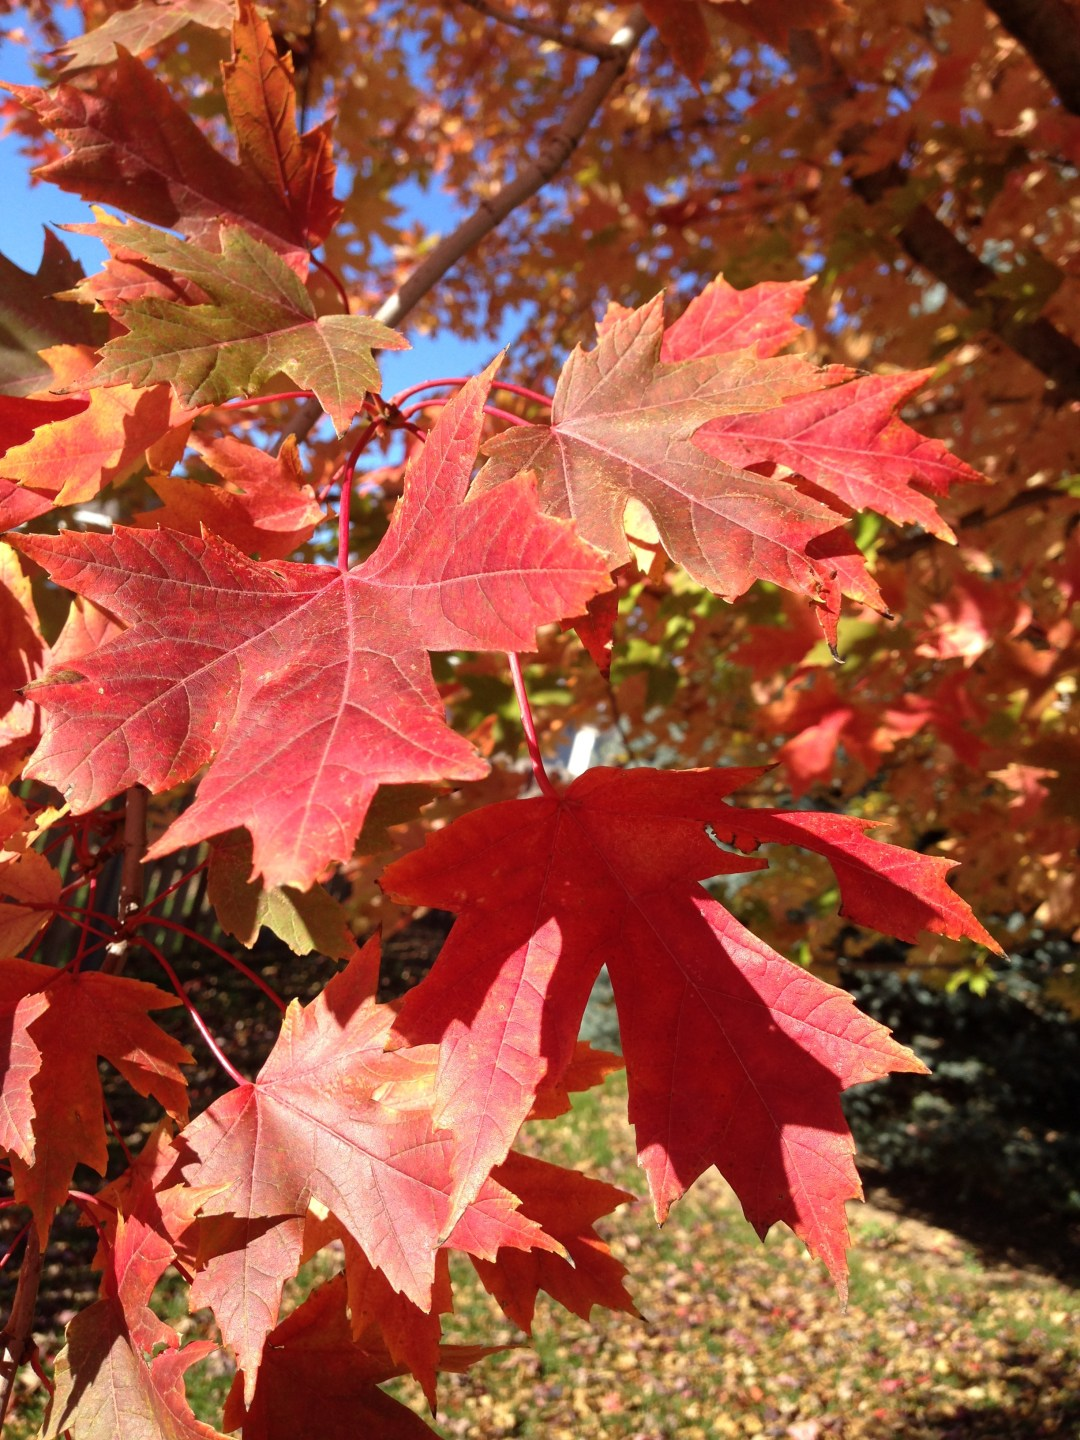 Perhaps I am like one of these leaves on our maple tree in our backyard. Time for me to fly!